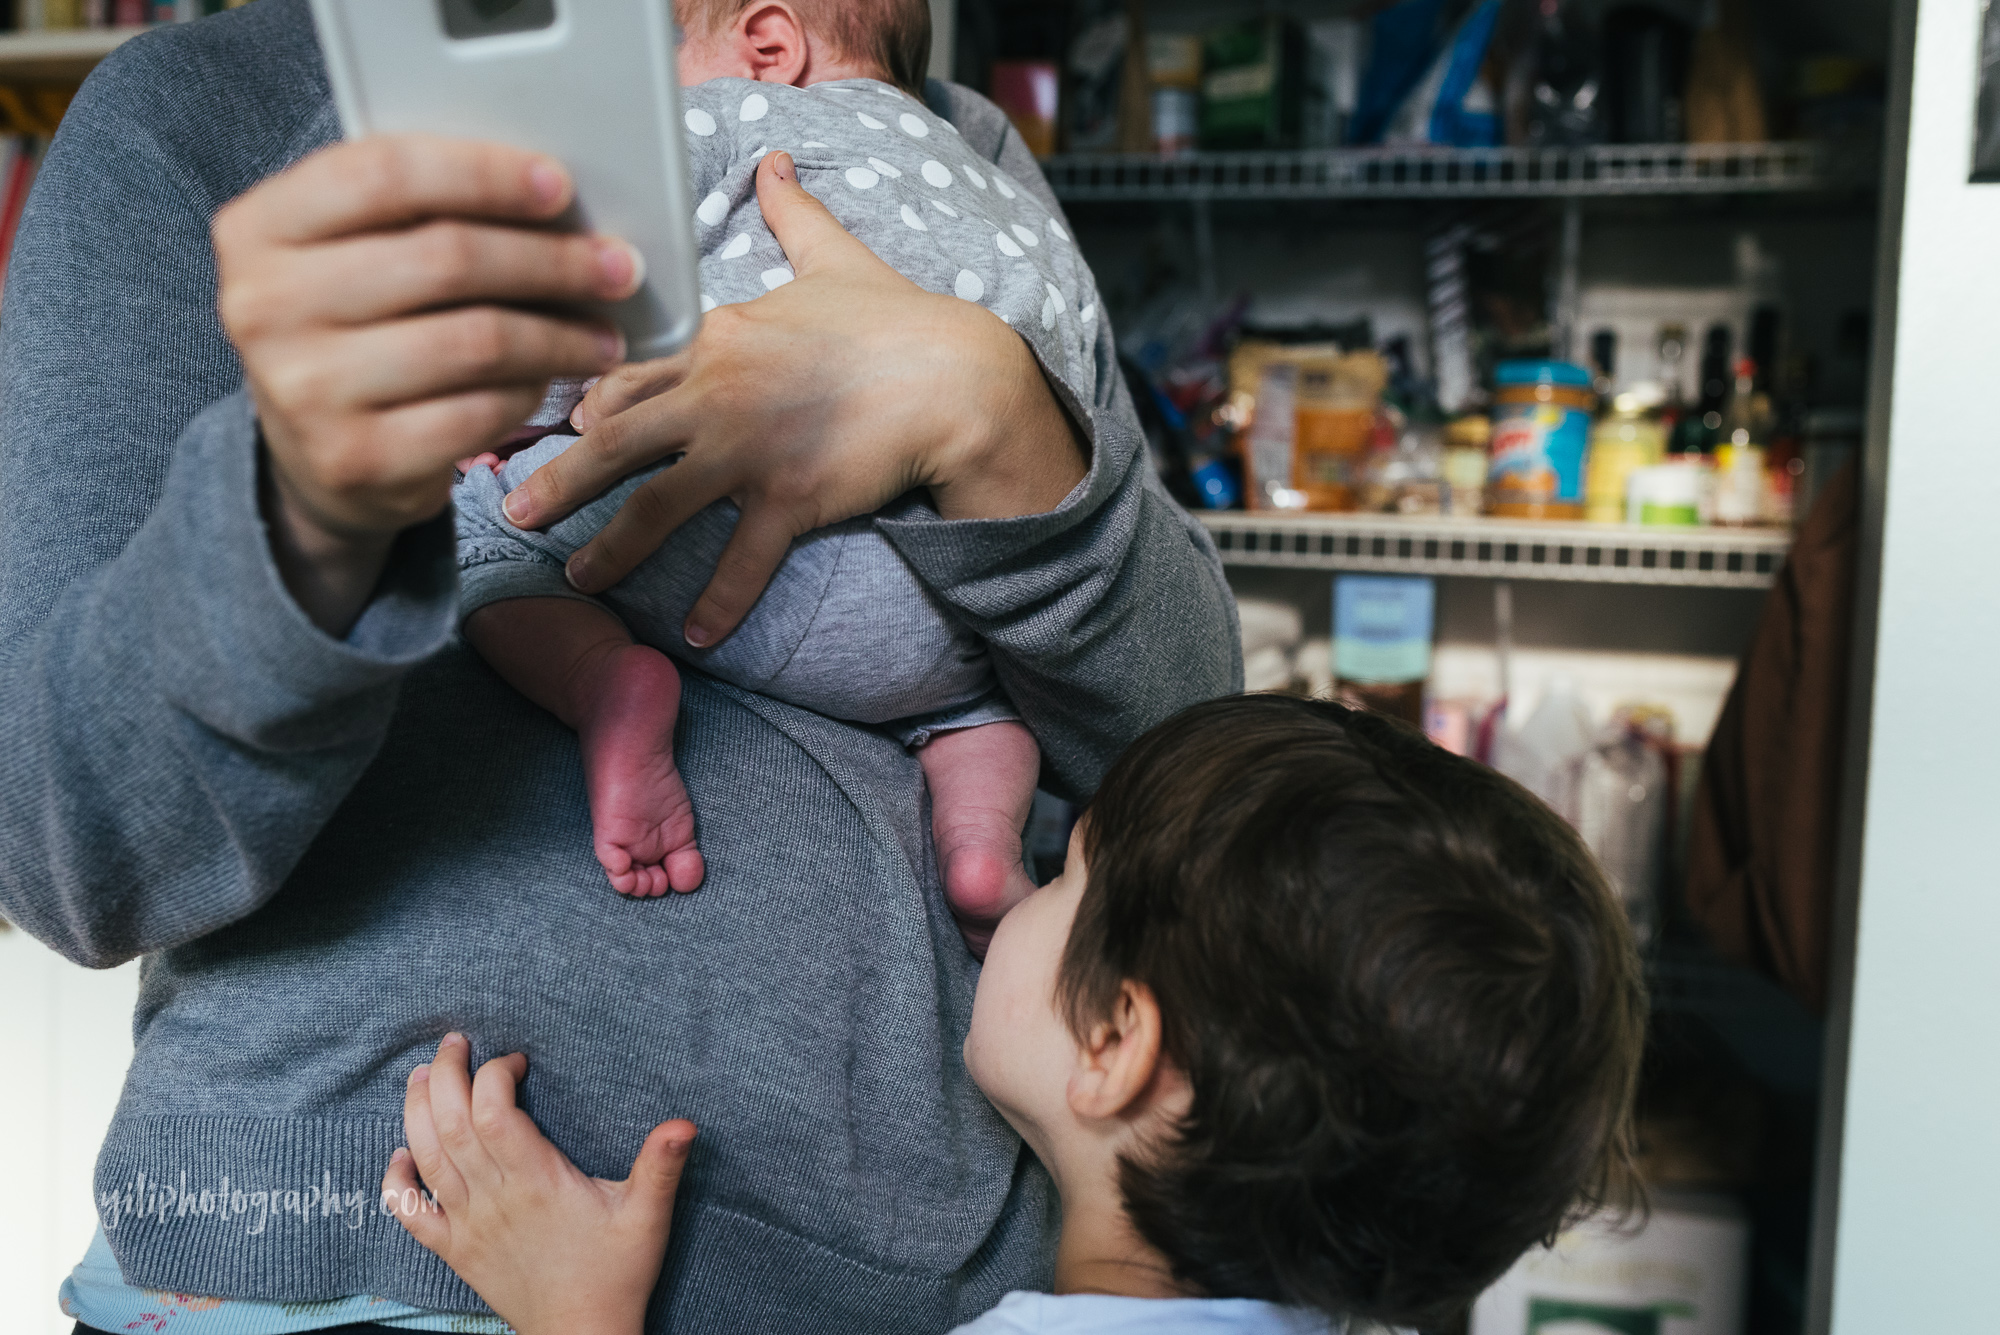 seattle mom checking smartphone while holding newborn girl